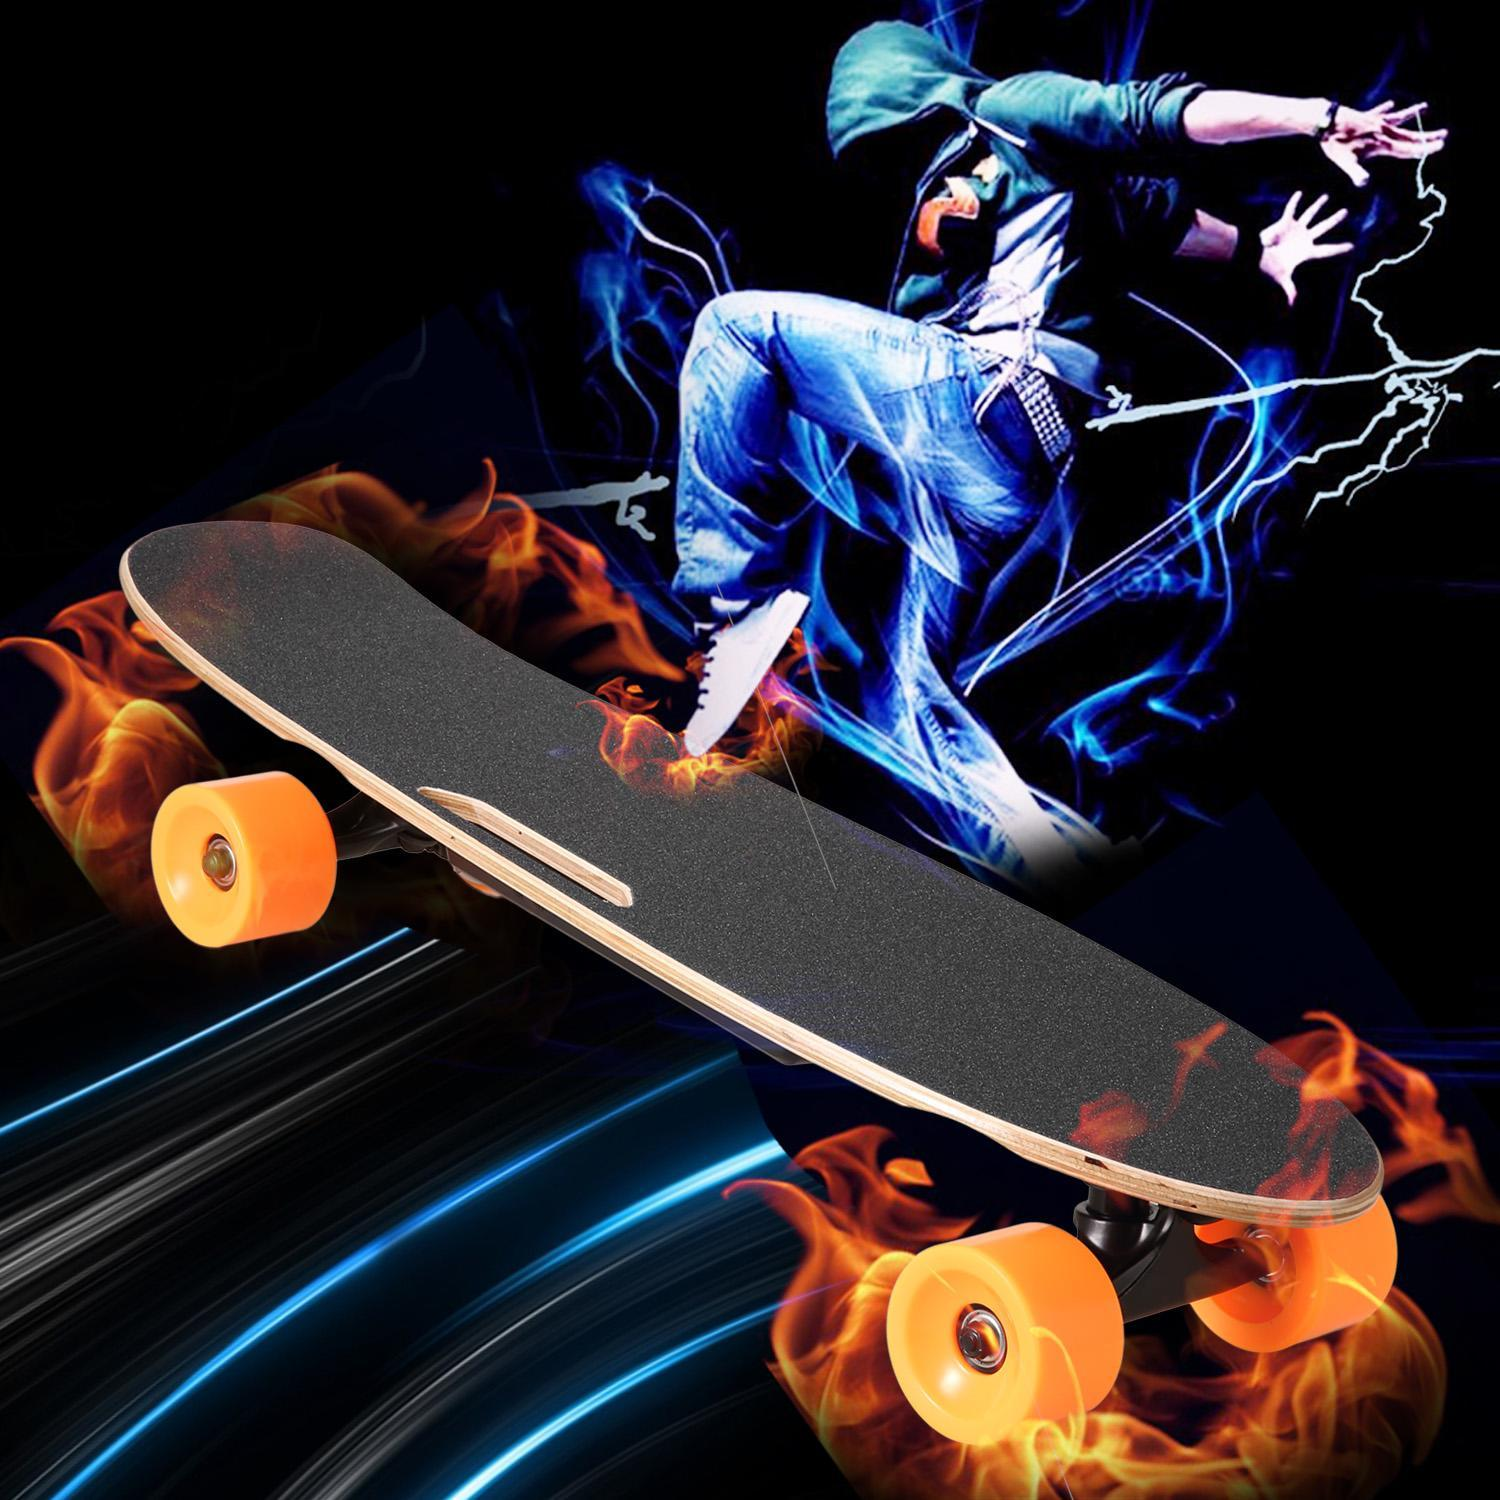 2018 The Newest 27inch Bluetooth Electric Skateboard Longboard With Remote Controller And Smart Power off on ,Samsung... by